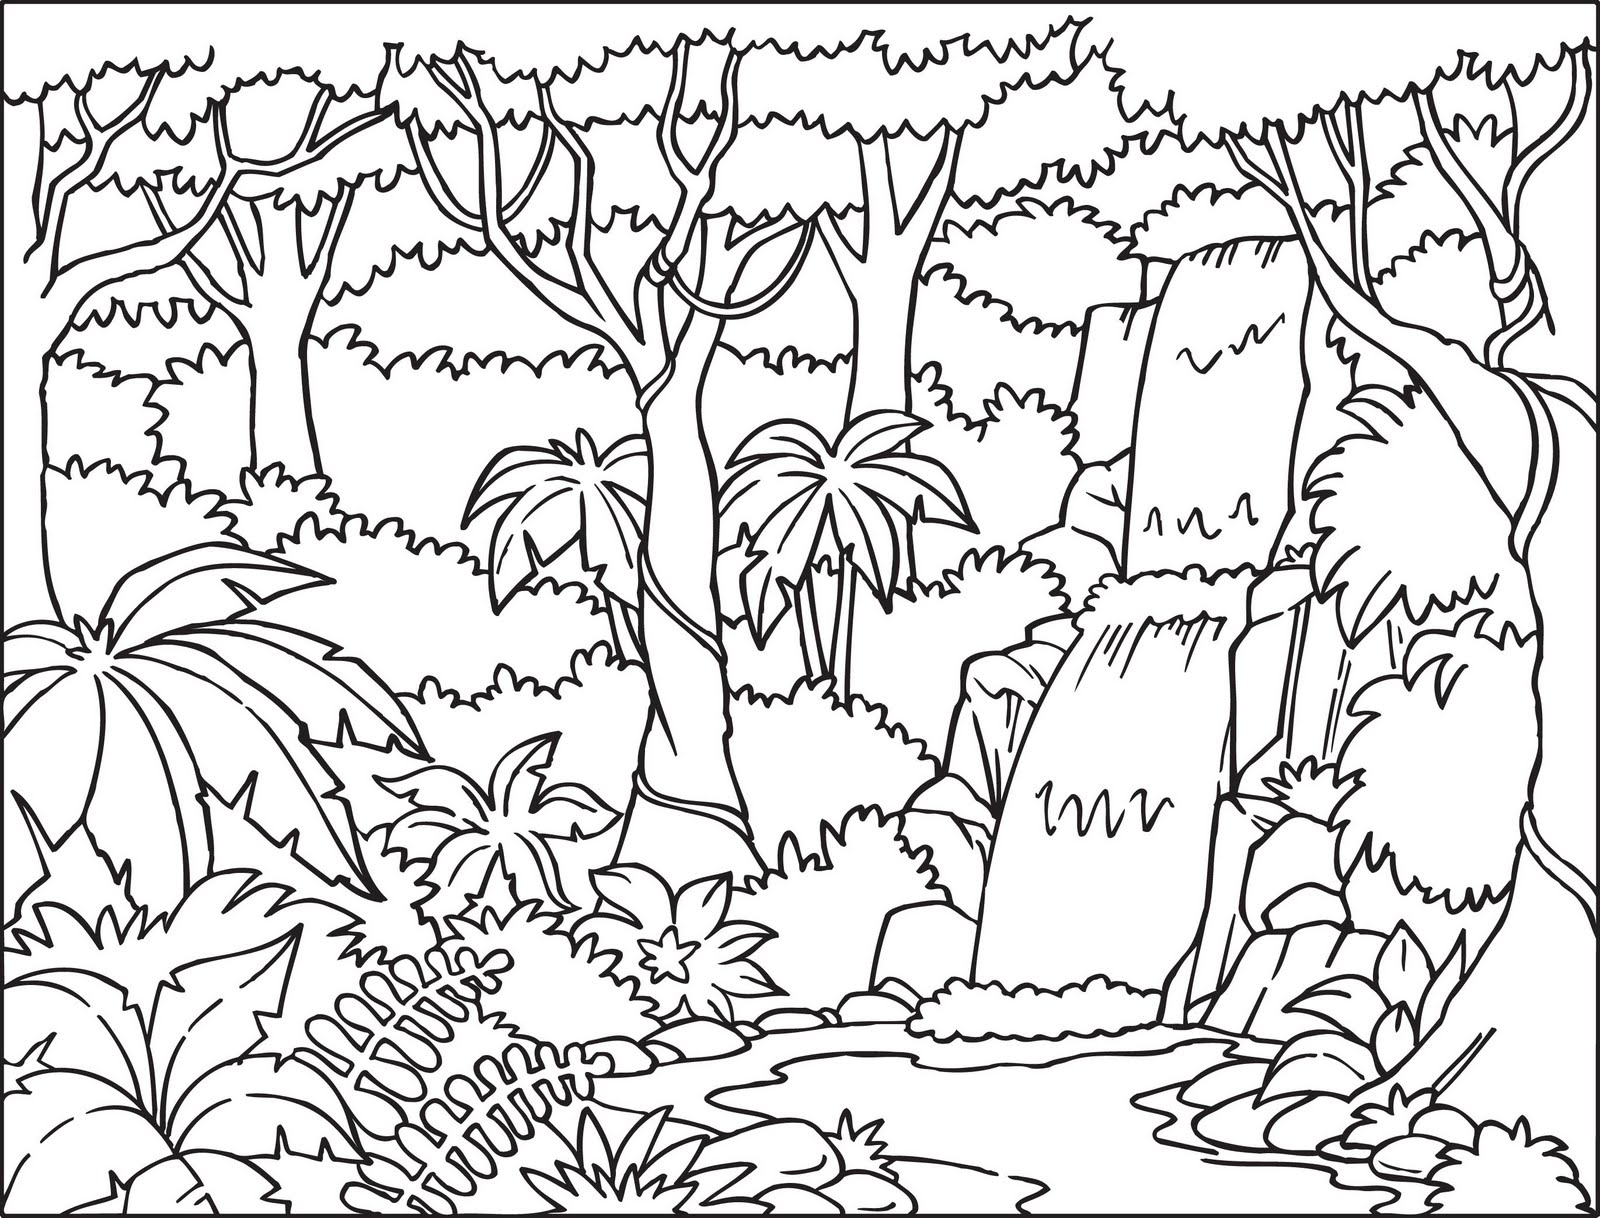 Coloring Pages Jungle Coloring Pages Printable jungle coloring pages printable eassume com eassume